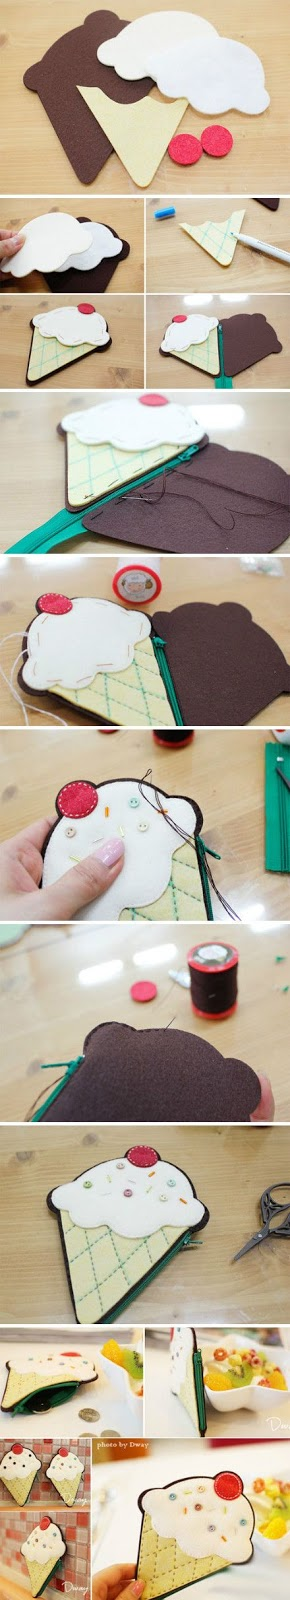 http://www.wikihow.com/Make-a-Felt-Ice-Cream-Purse